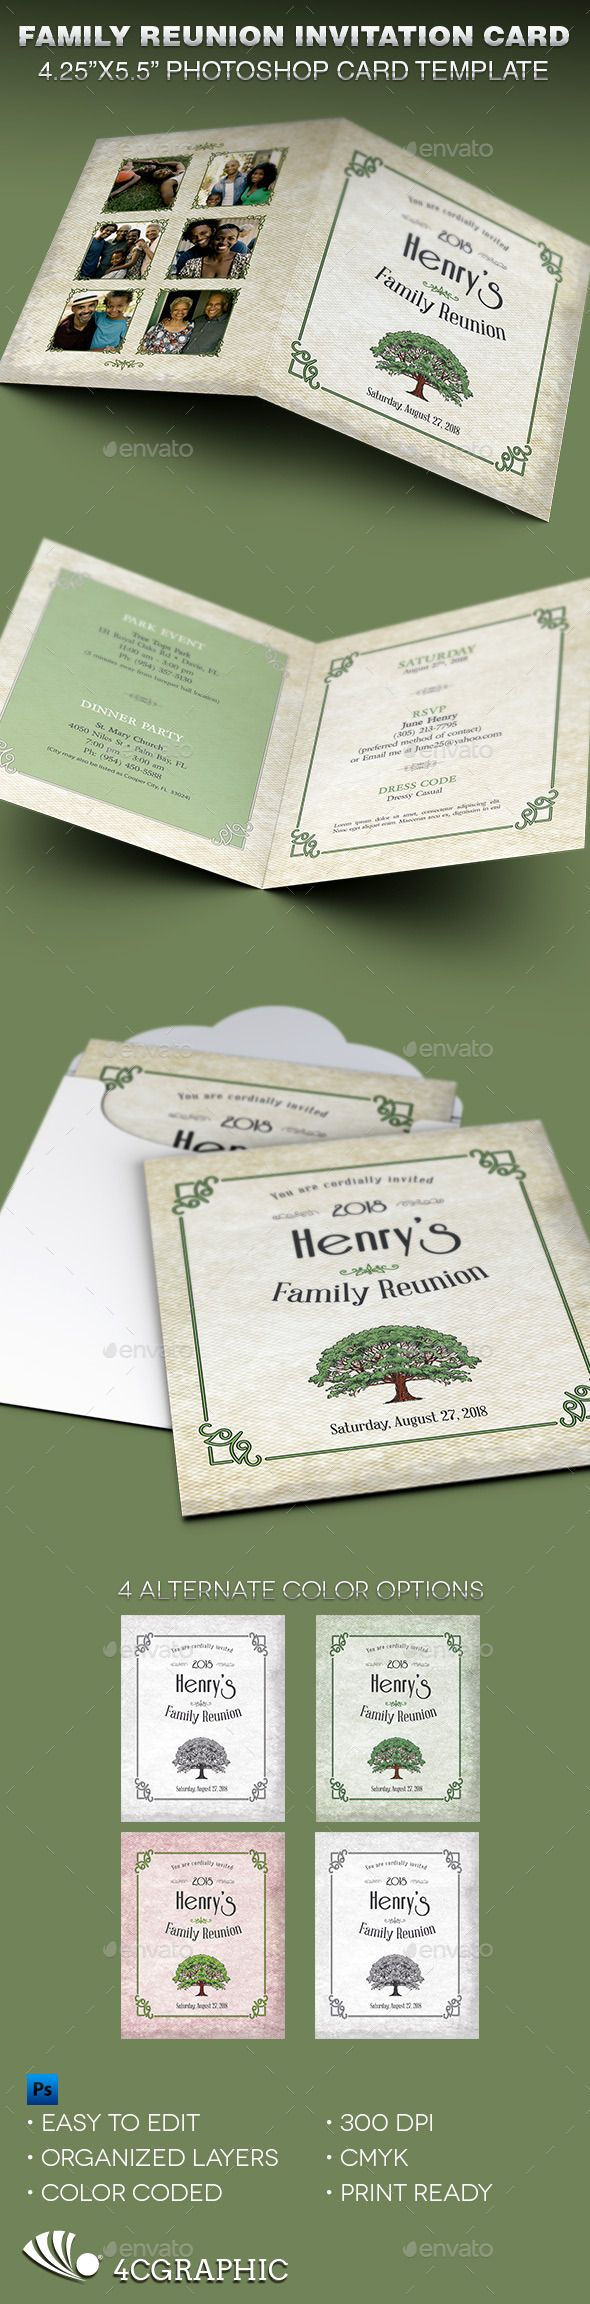 Family Reunion Invitation Card Template - Cards & Invites Print Templates